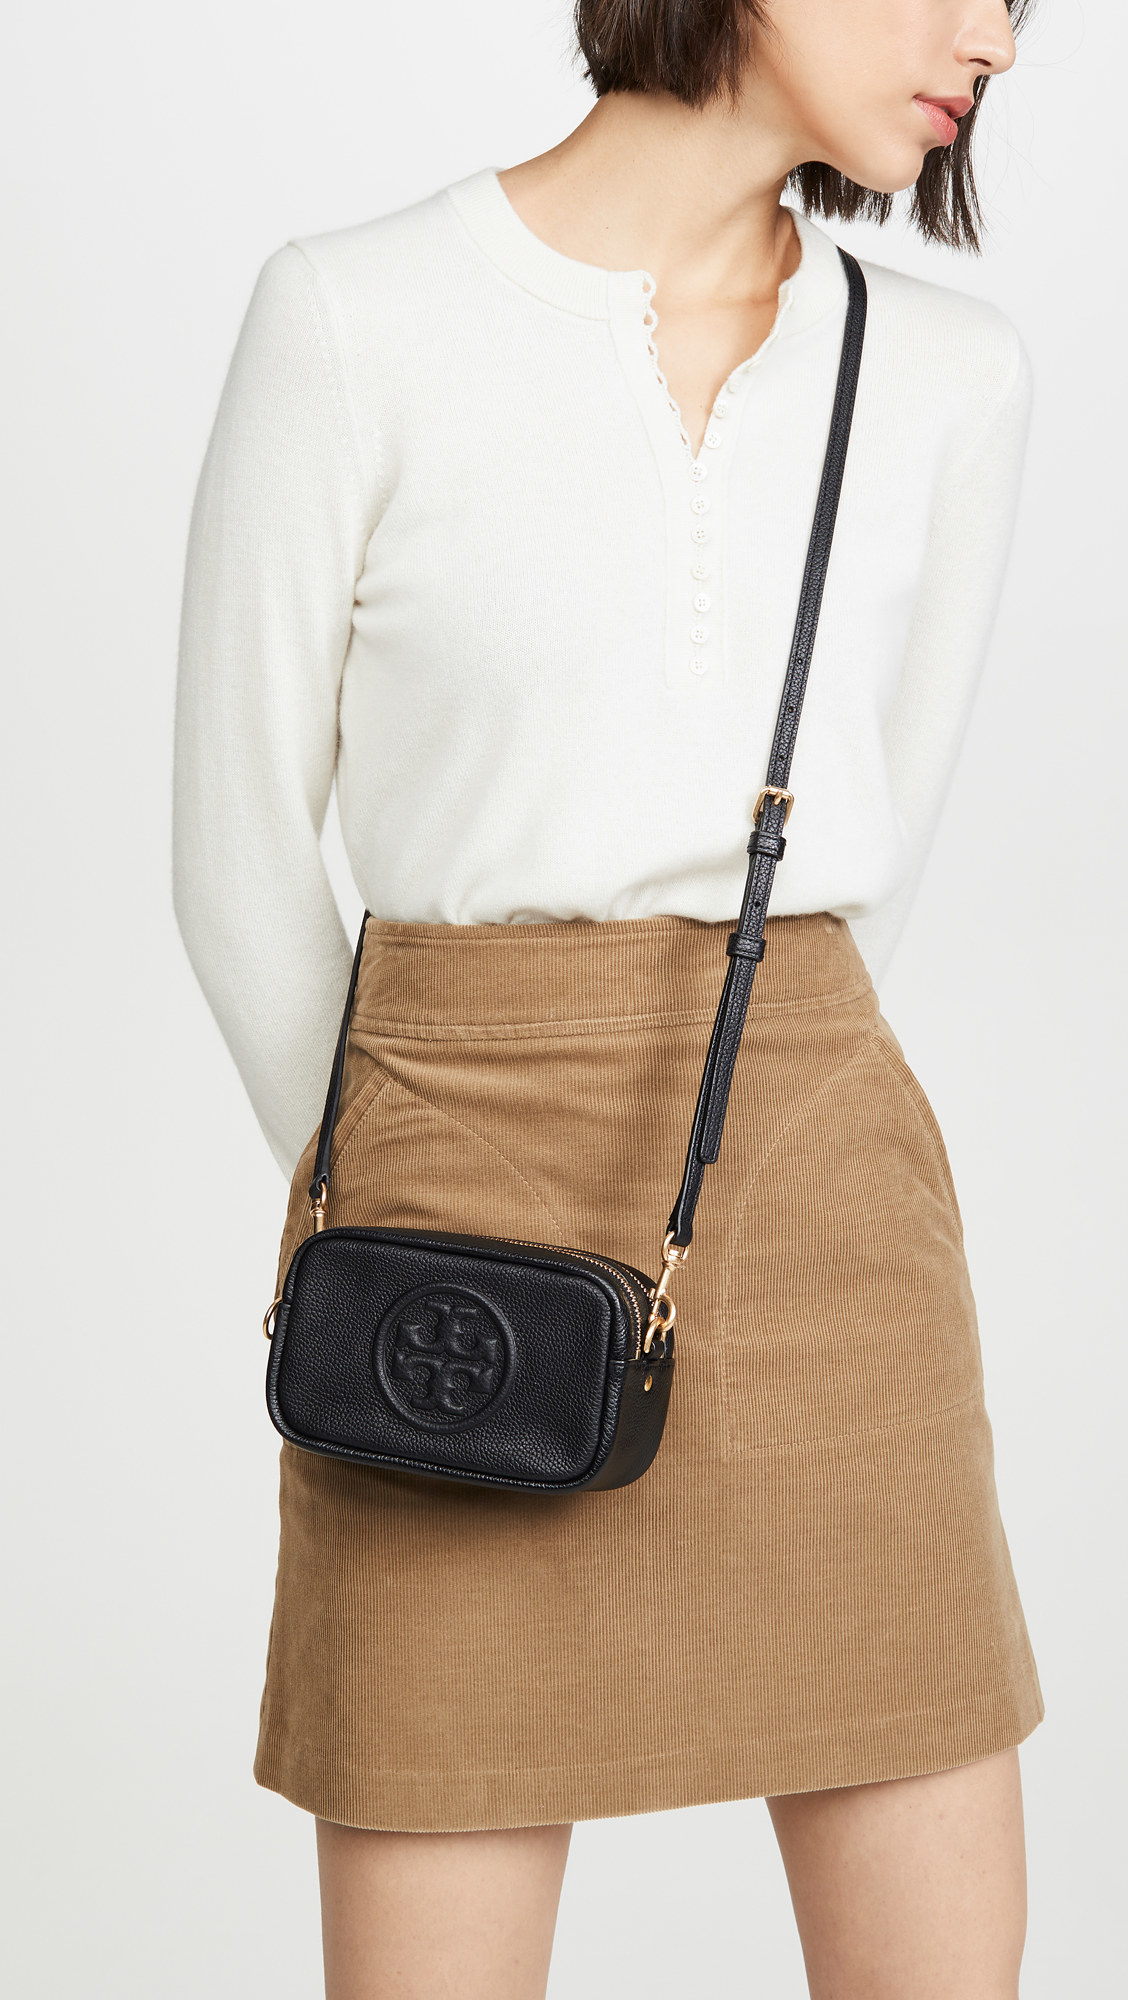 a model wearing the bag slung across her body: it's small, made of black leather, has a rounded rectangle shape and the Tory Burch logo imprinted in the middle. the zipper is gold